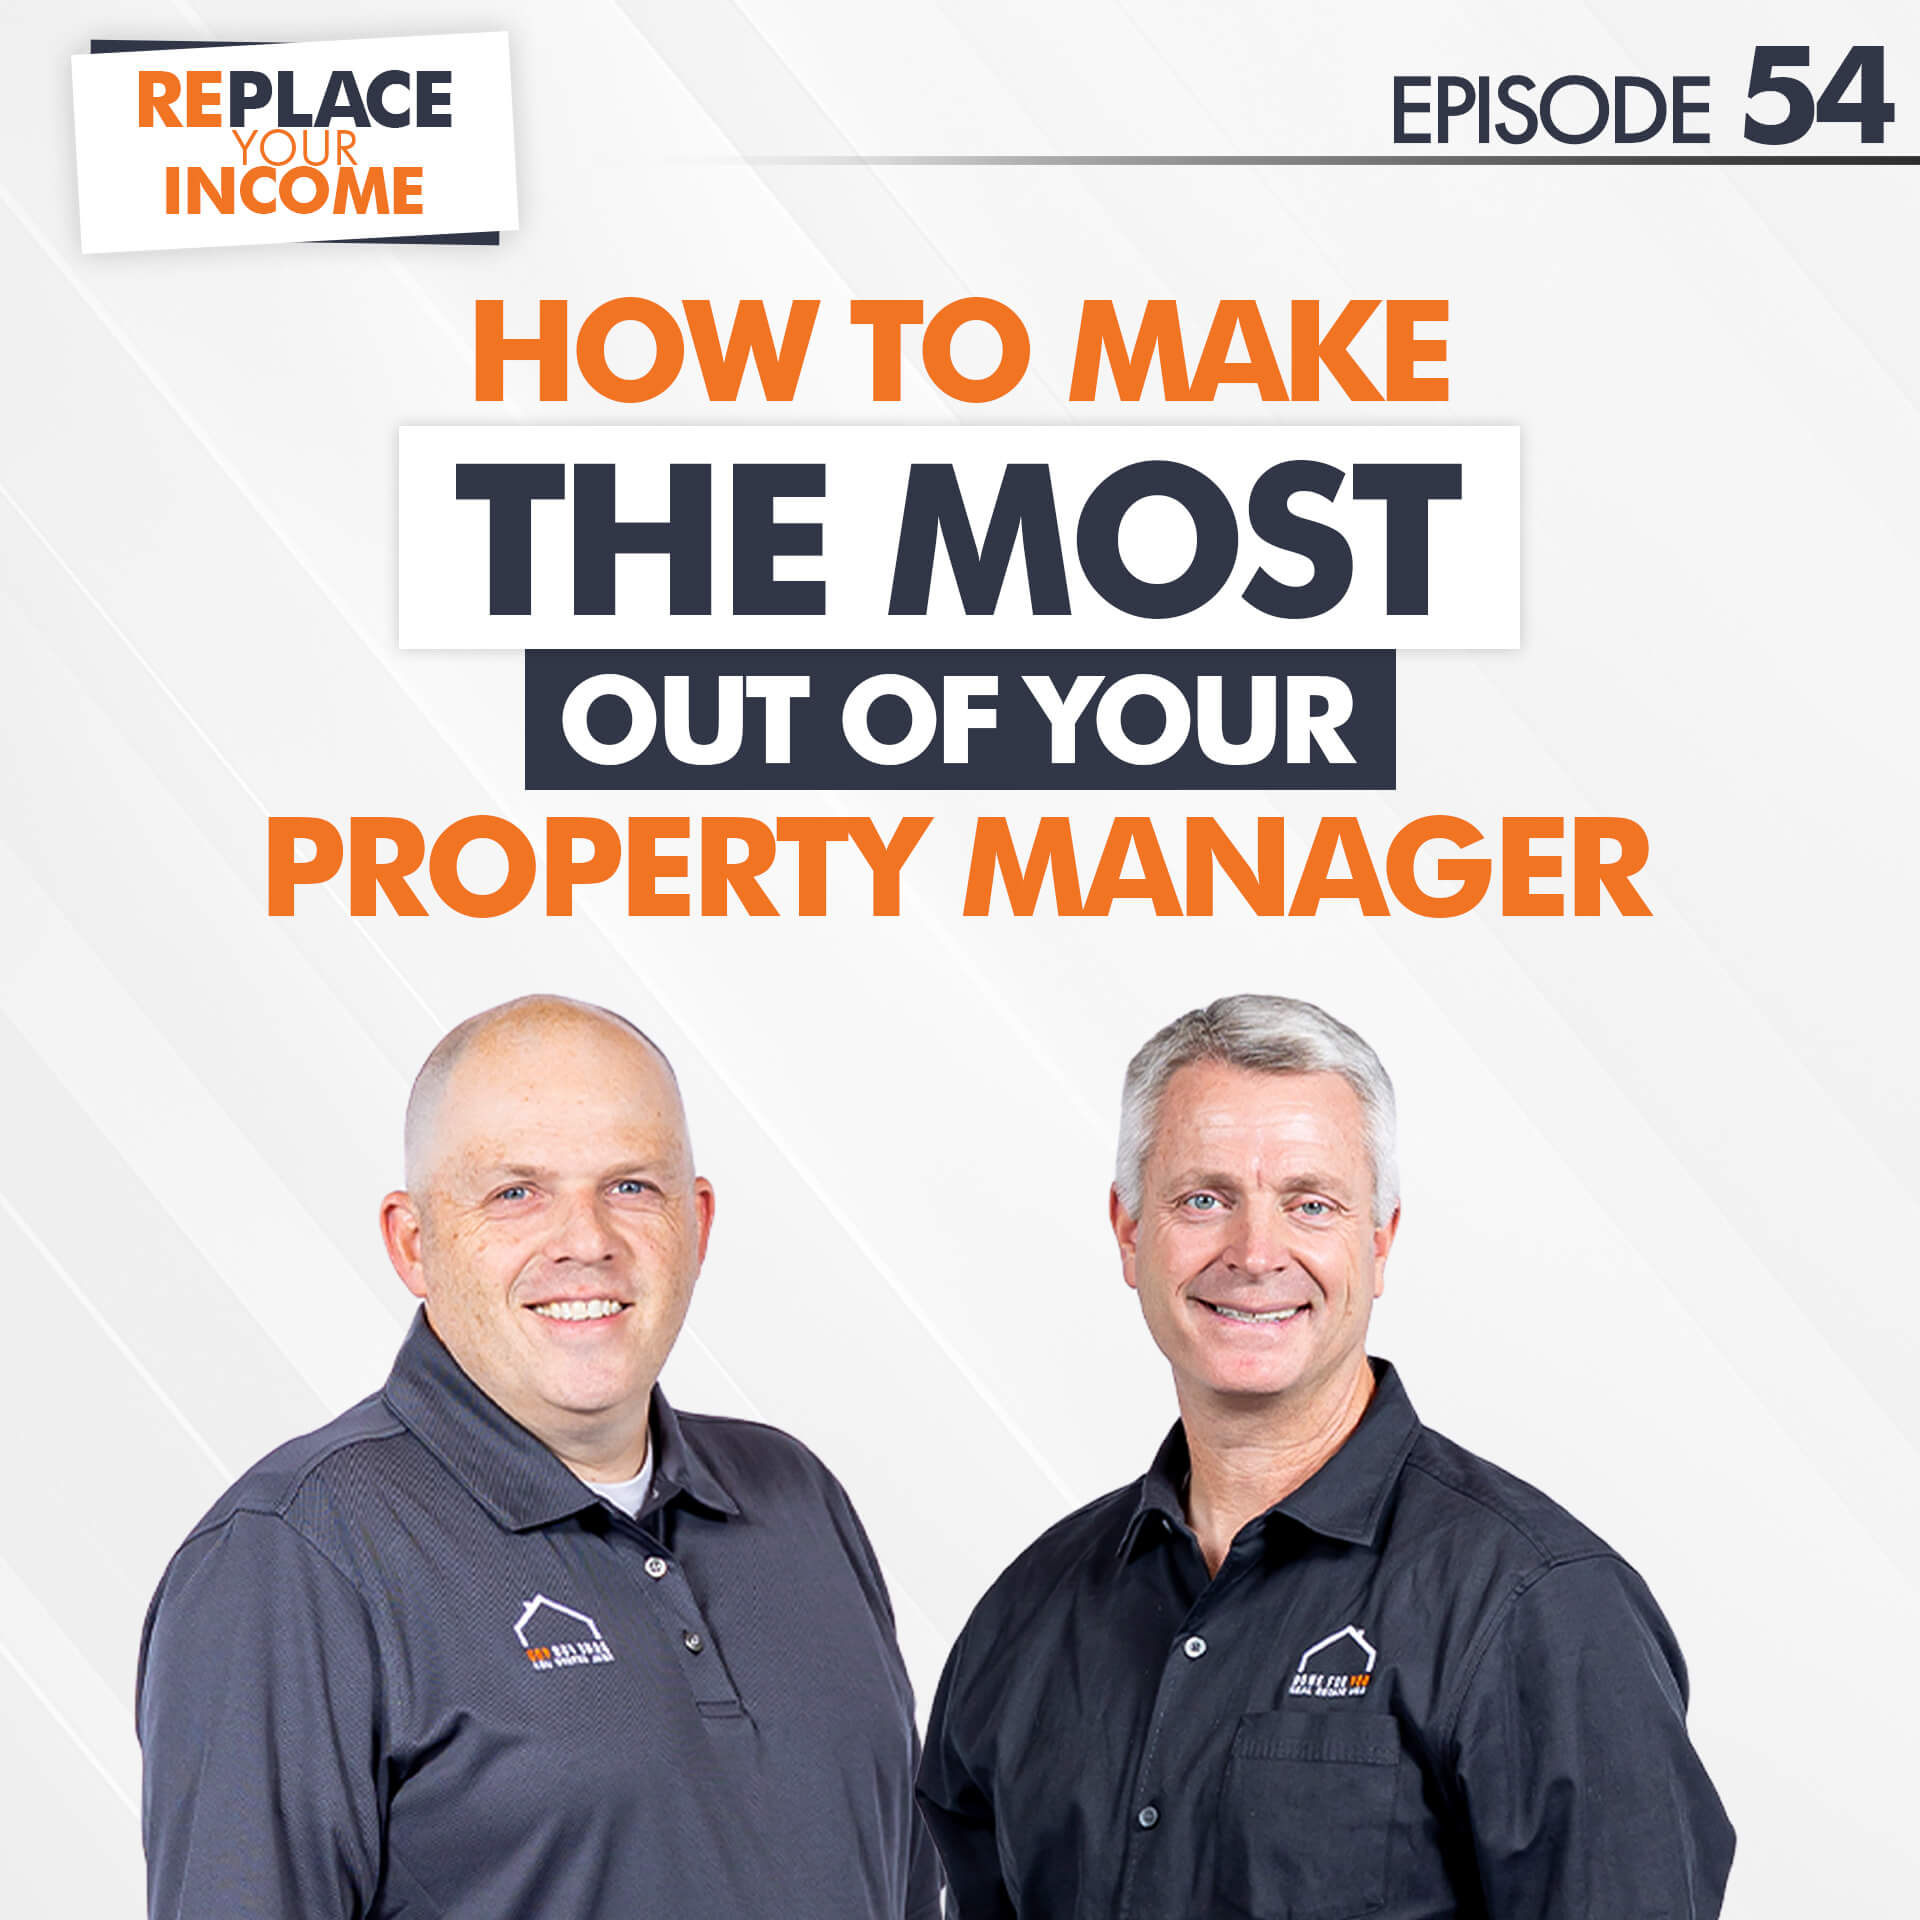 How To Make The Most Out Of Your Property Manager